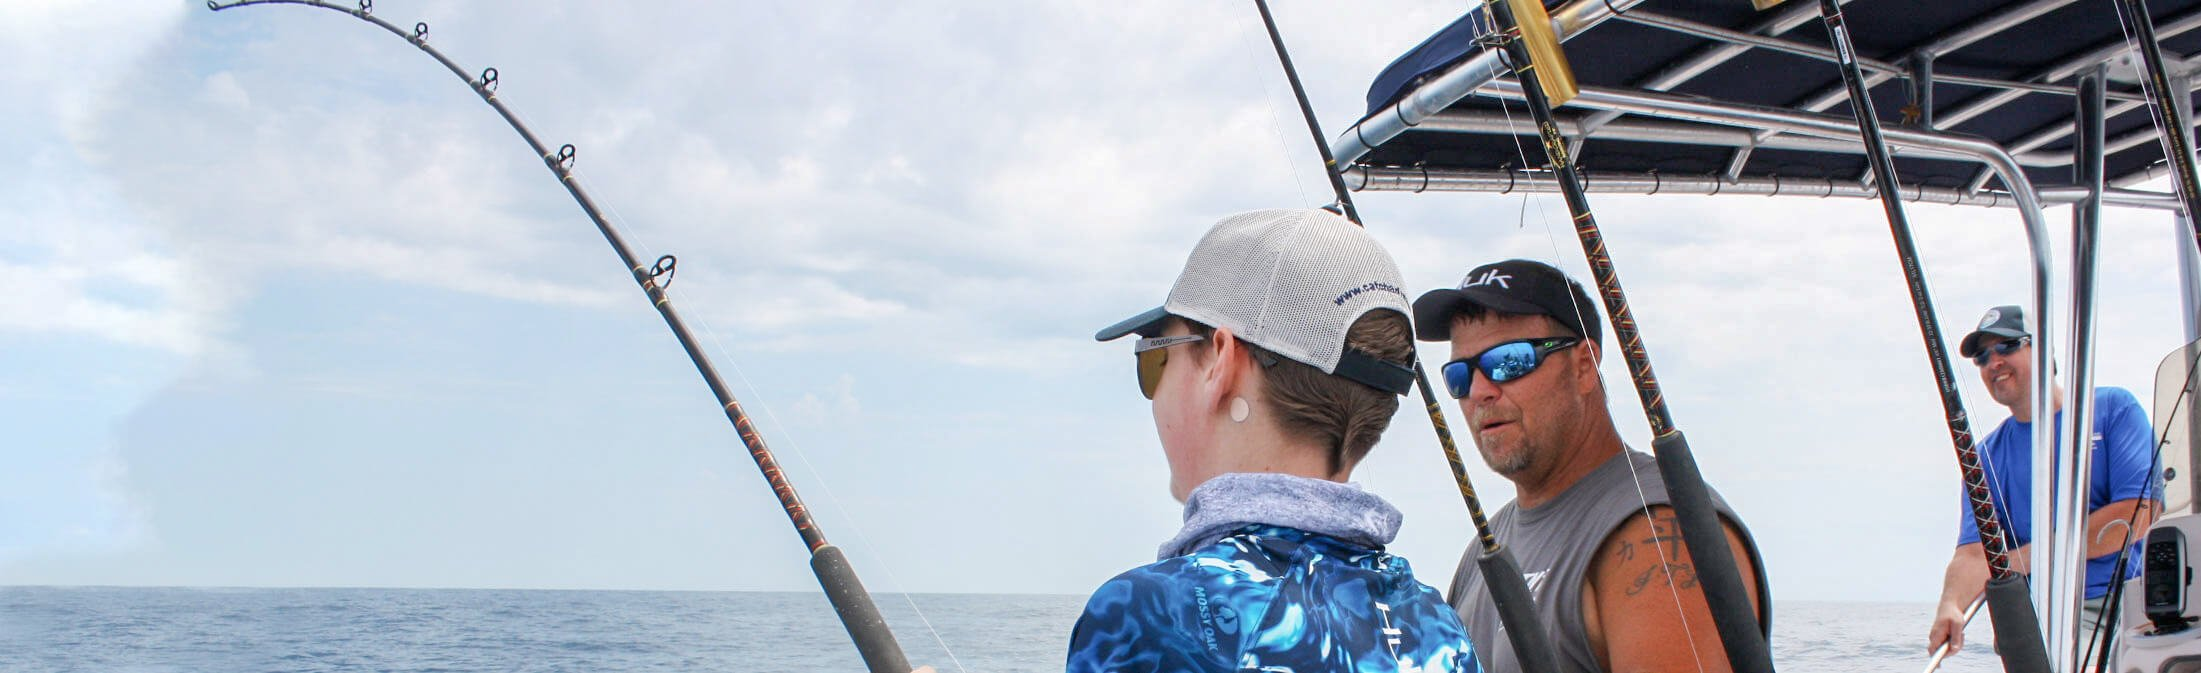 Catch-A-Dream child on saltwater fishing adventure